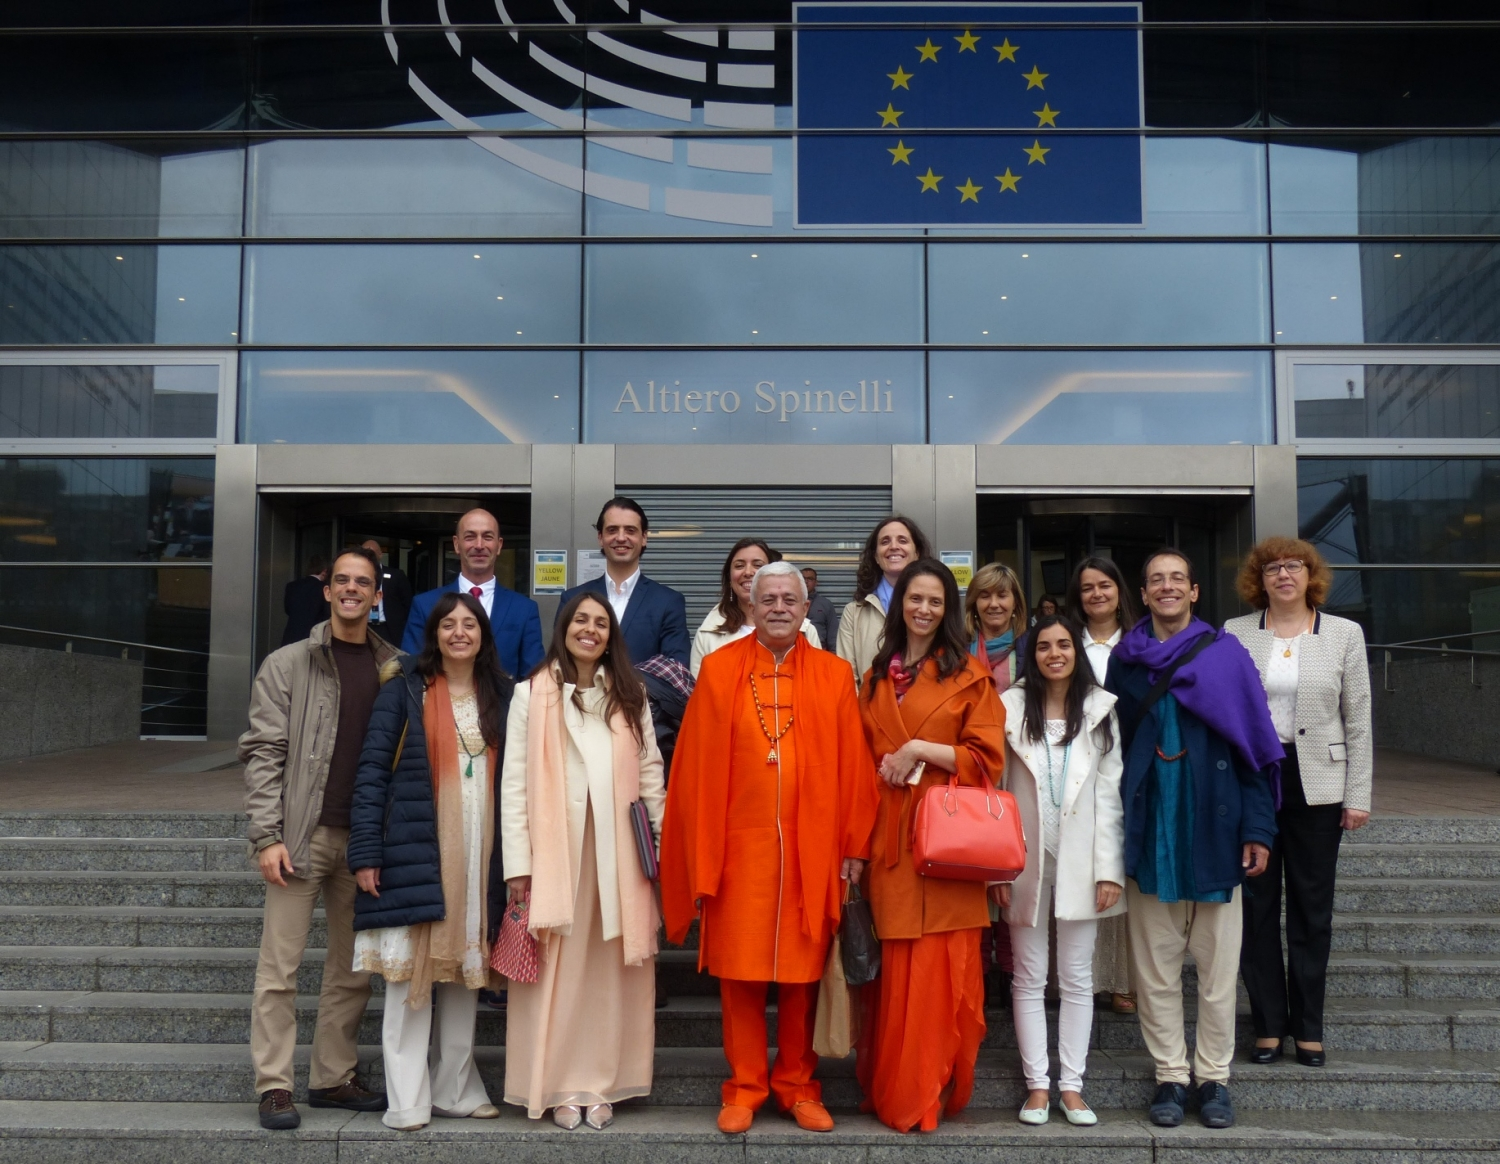 Solemn Closing Ceremony of the 2nd European Yoga Congress - 2016 - European Parliament in Brussels